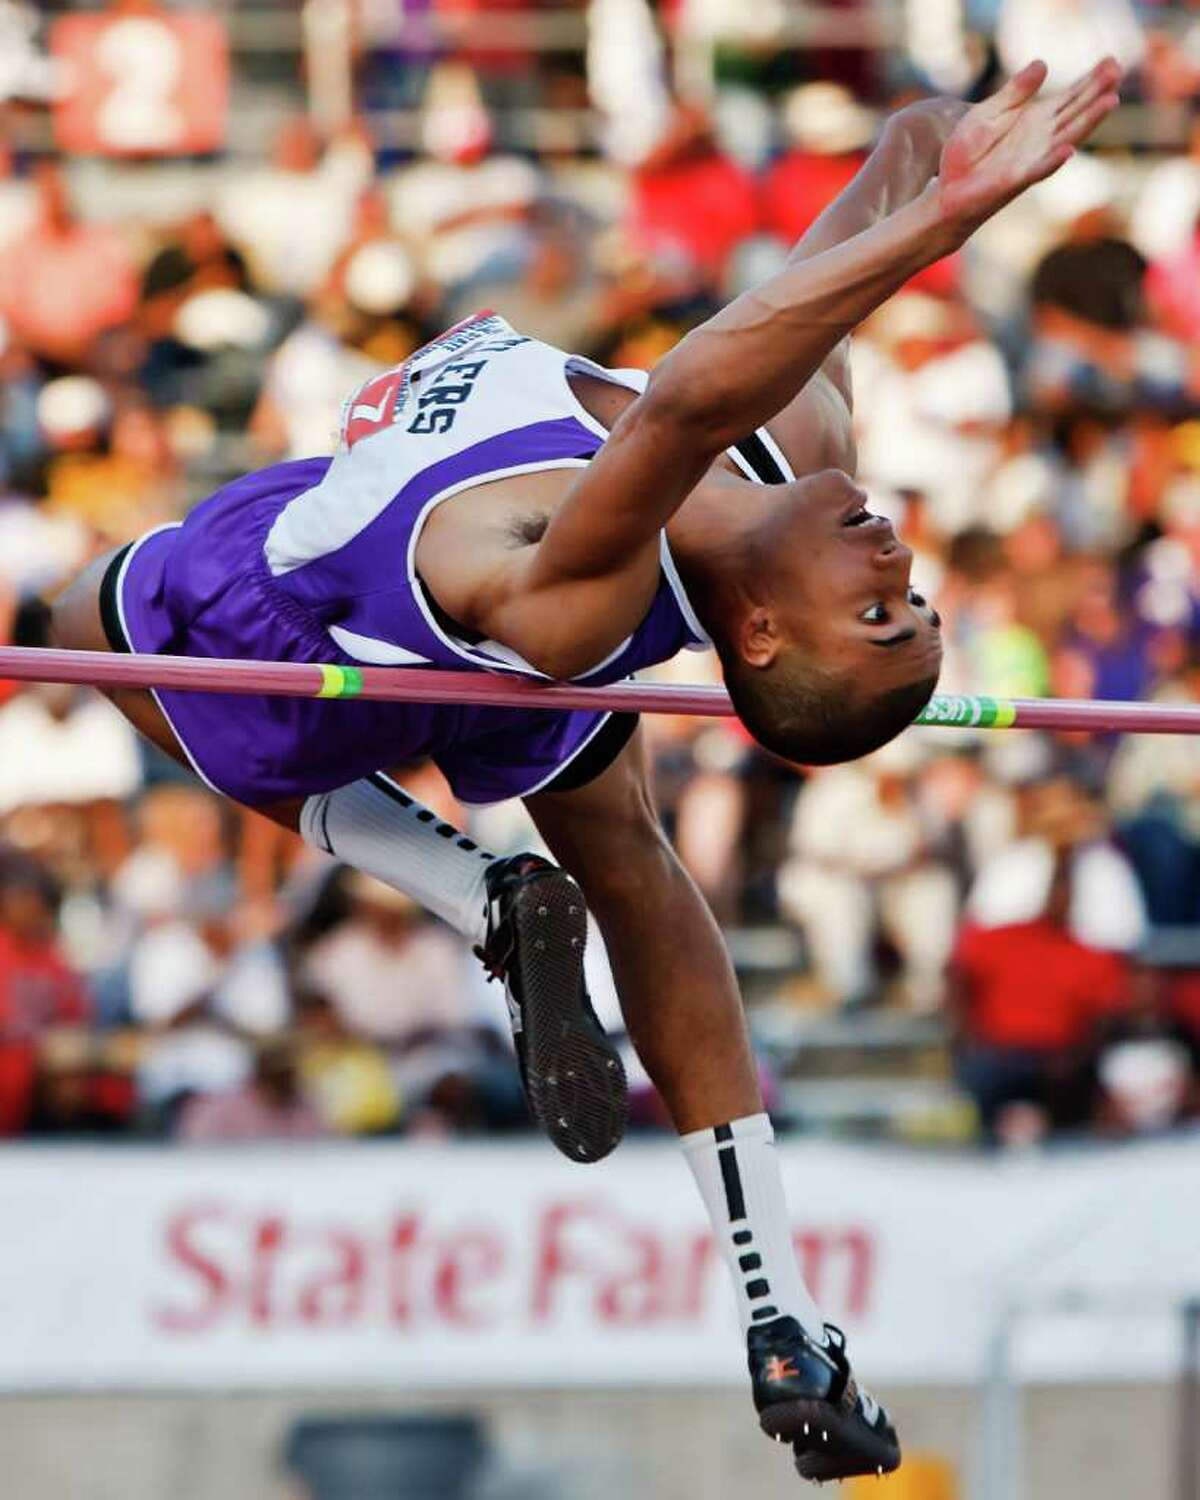 """San Marcos' Allex Austin took first place in the 5A boys' high jump with a jump of 6' 10"""" during the State Track & Field championships at Mike Myers Stadium on May 14, 2011. MARVIN PFEIFFER/mpfeiffer@express-news.net"""